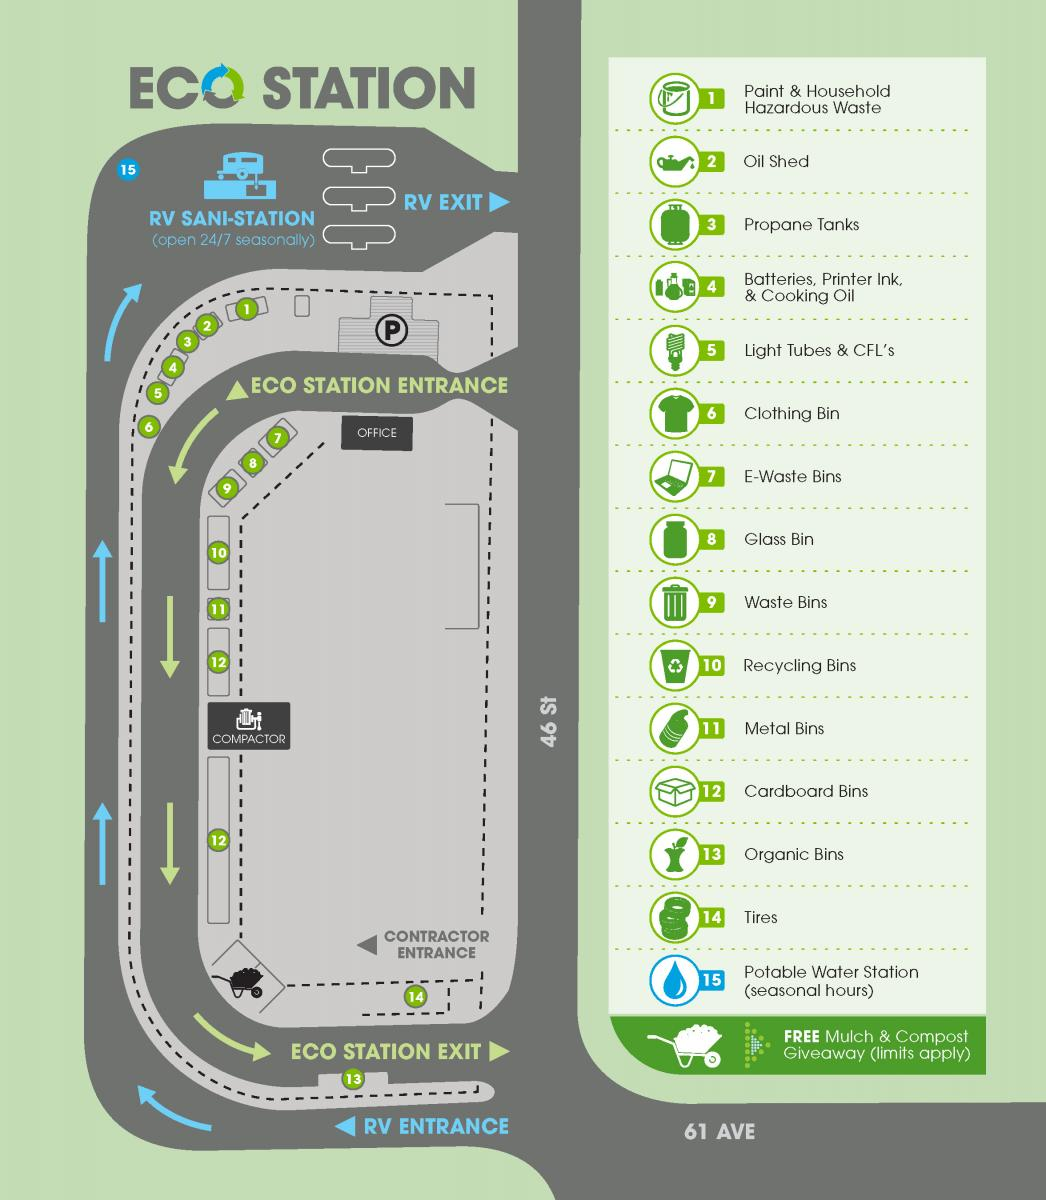 Eco Station Map